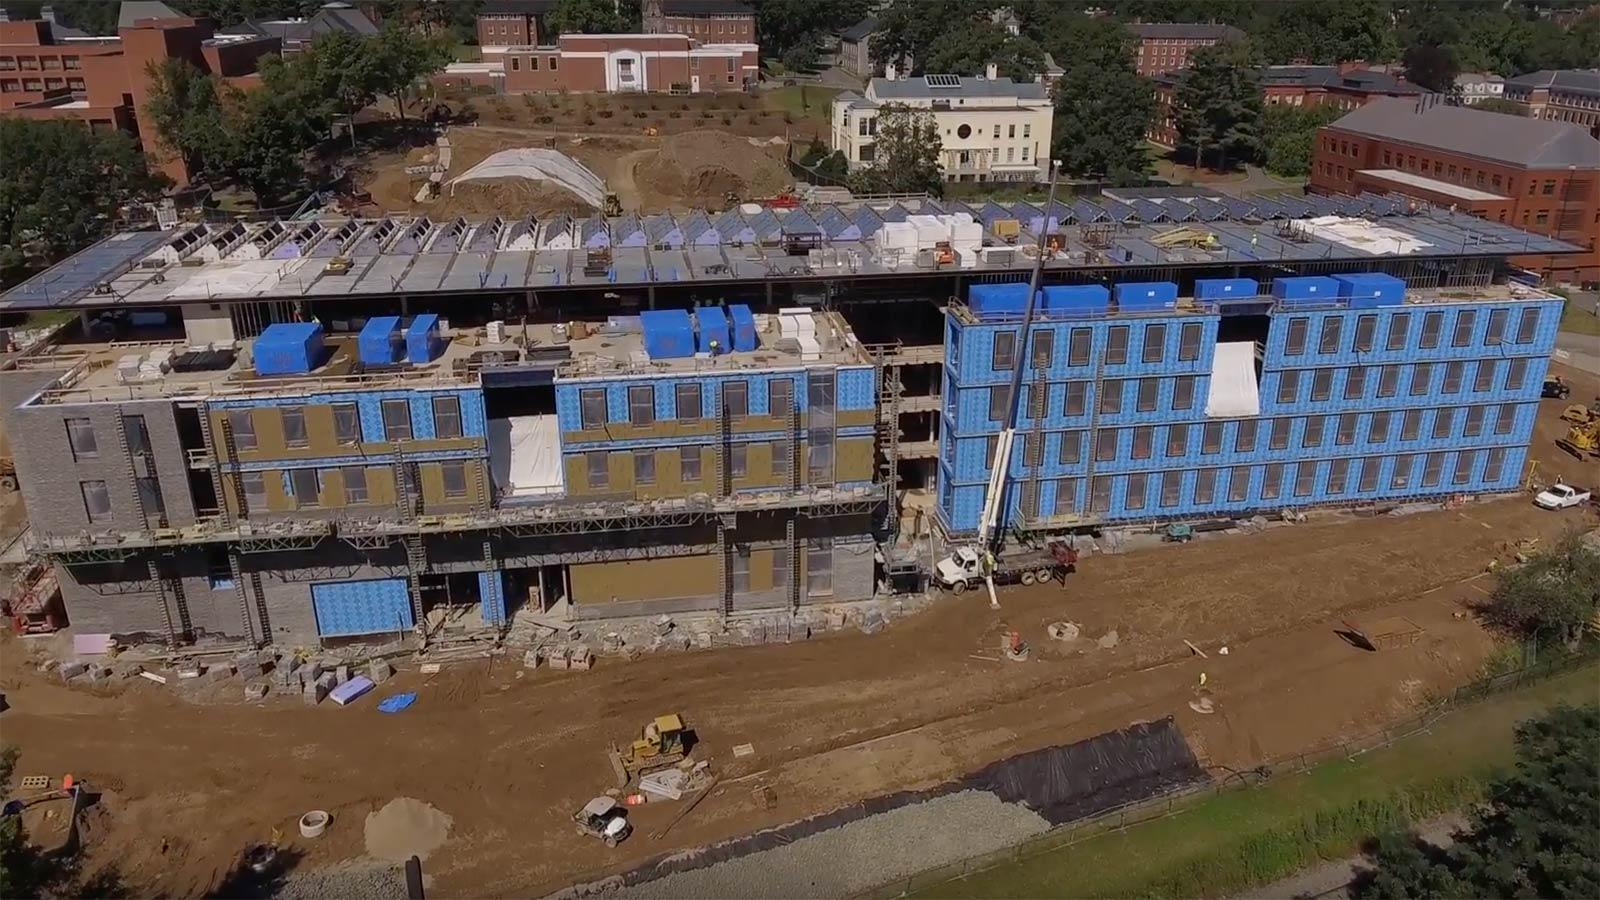 The new Science Center at Amherst College under construction